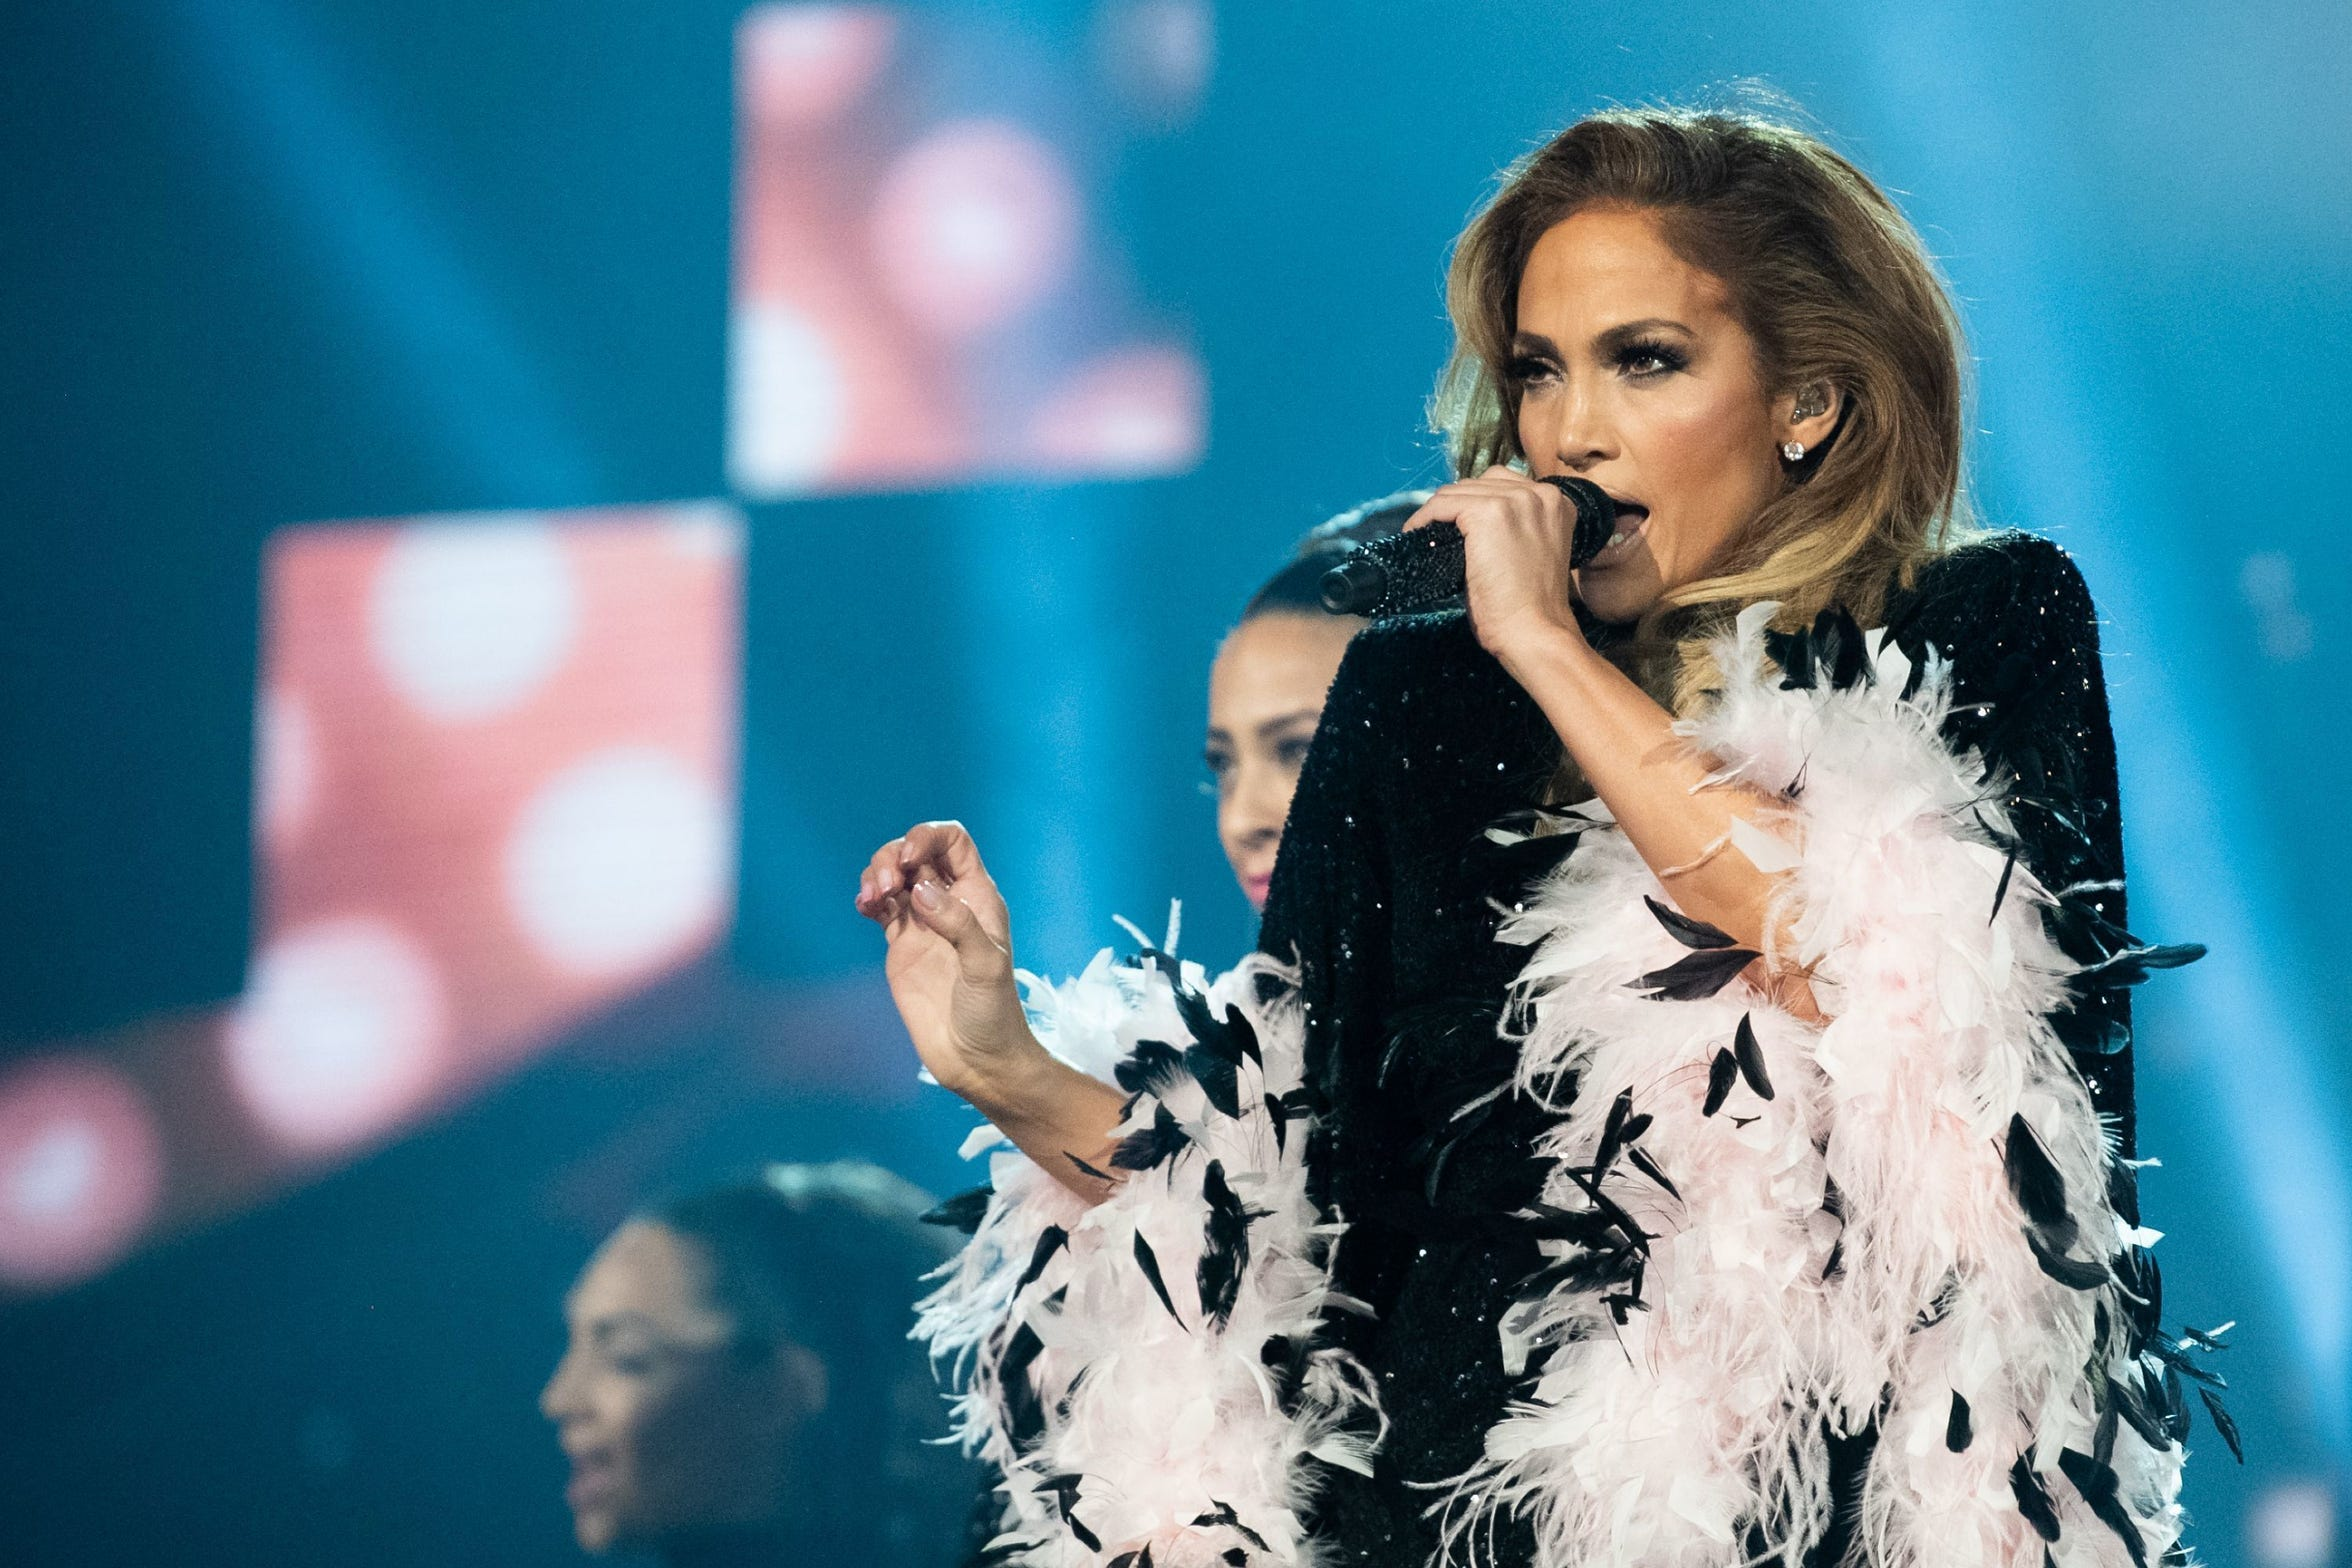 Jennifer Lopez is among the headliners for this year's Big Gig.